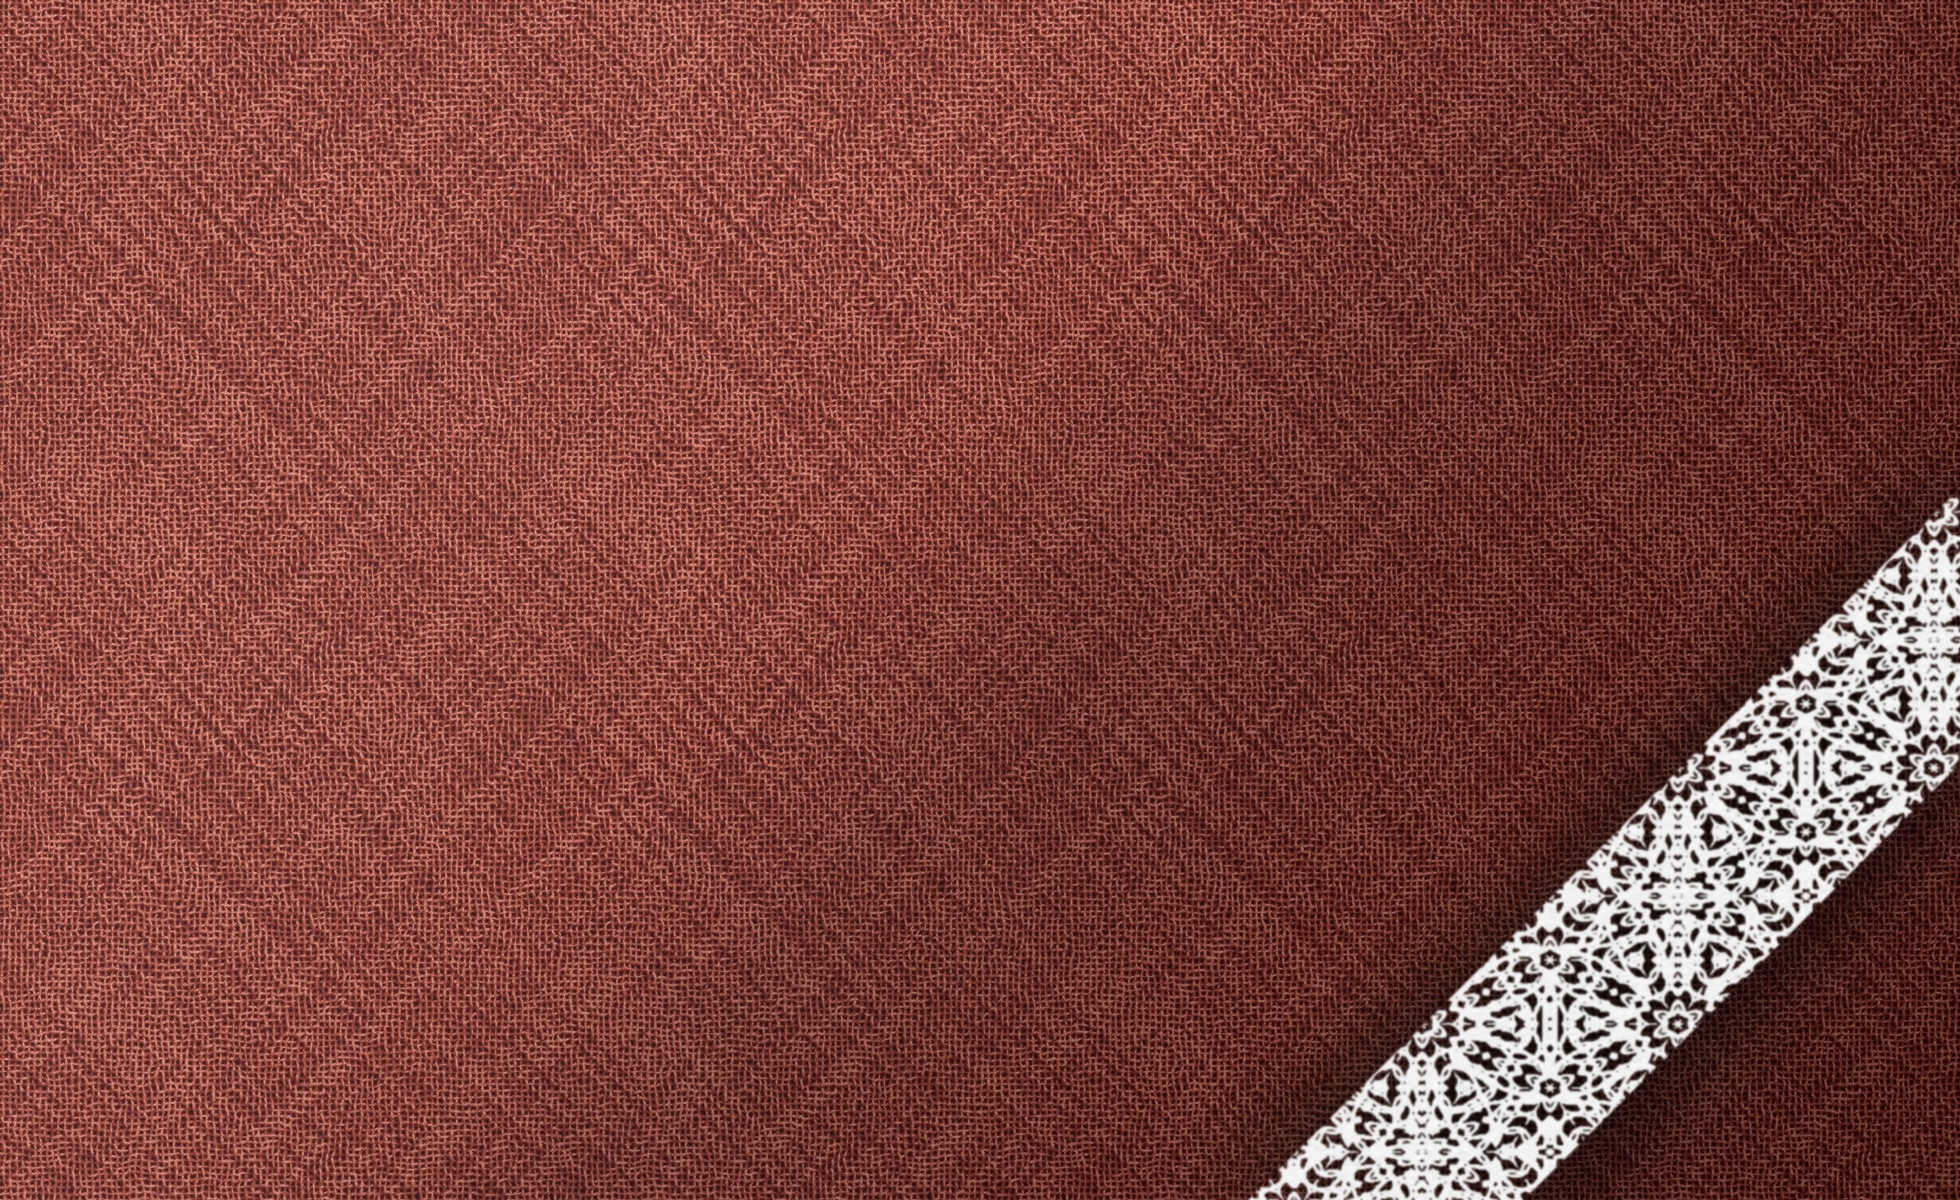 Texture background cloth burgundy brown white lace wallpaper 1960x1200